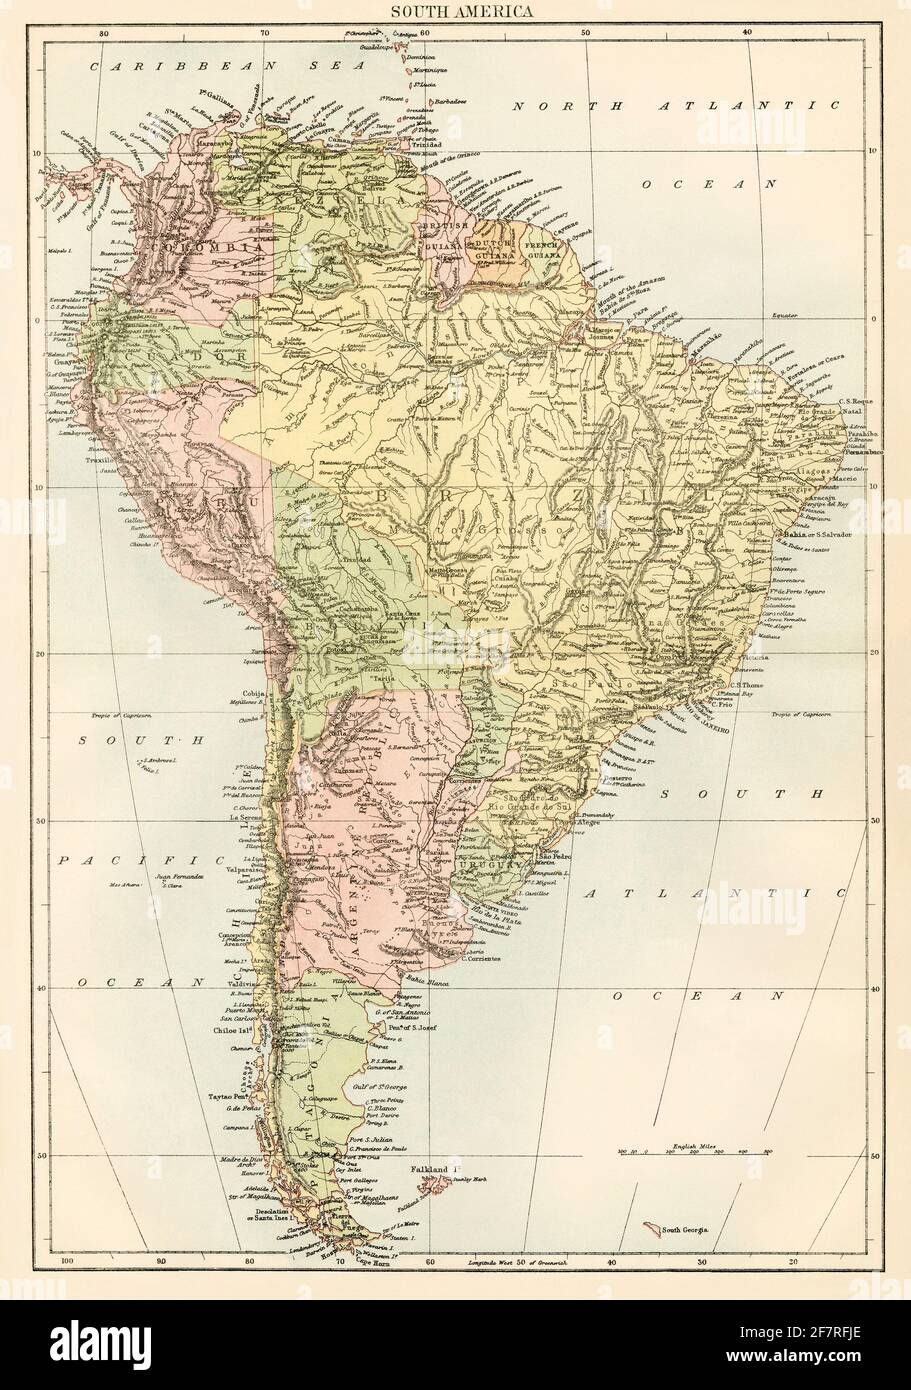 Map of South America, 1870s. Color lithograph Stock Photo